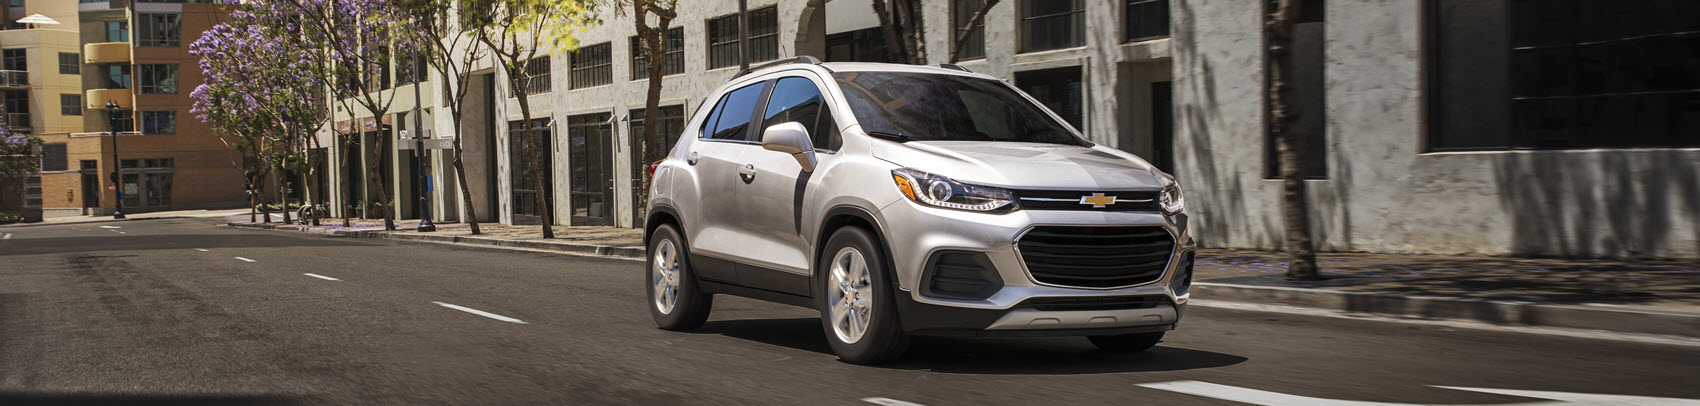 Chevy Trax Reviews Statesboro Georgia